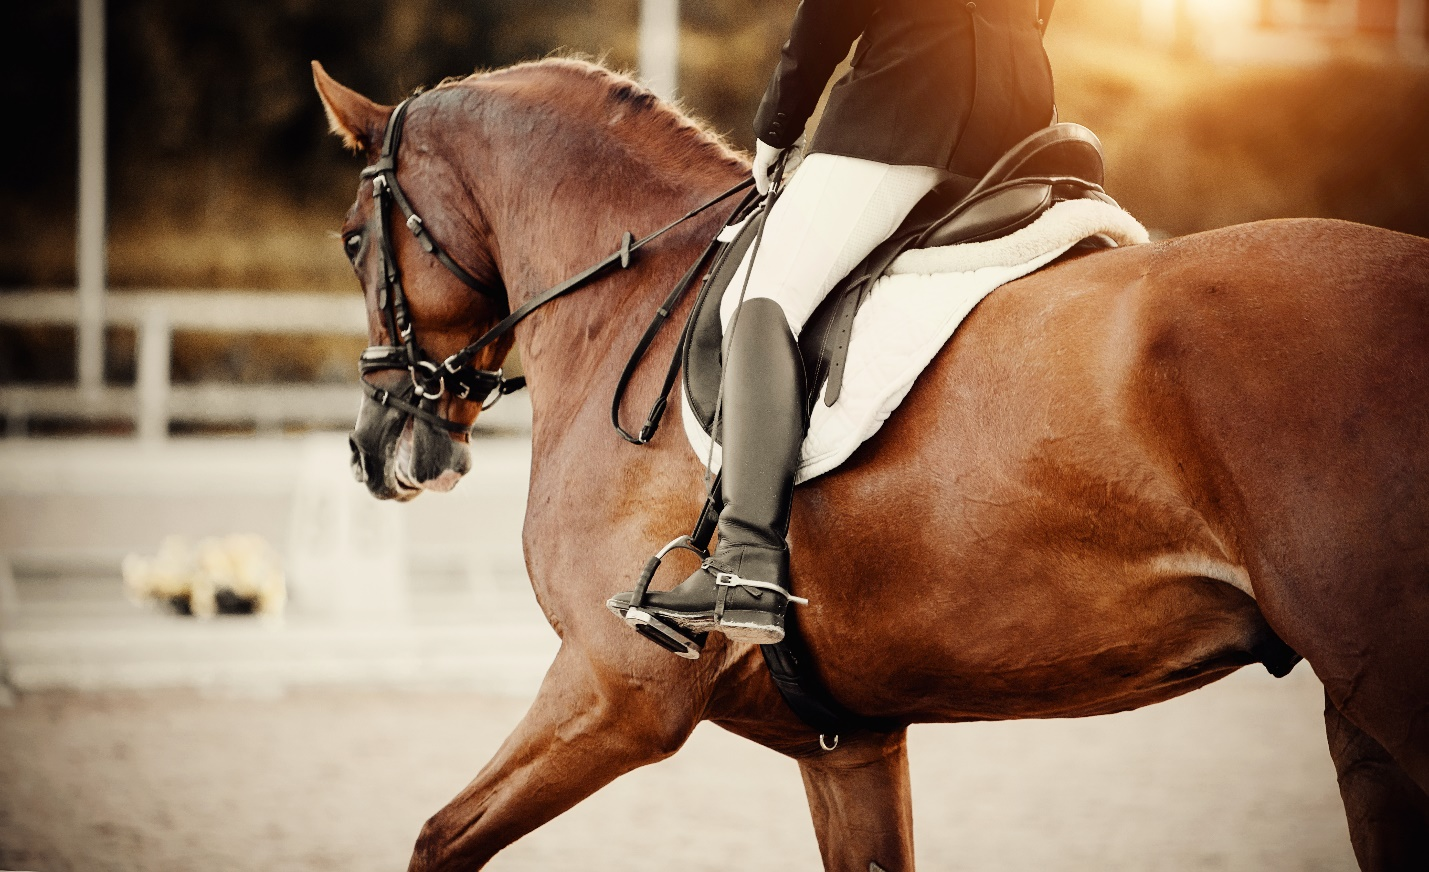 The leg of the rider in the stirrup, riding on a brown horse.